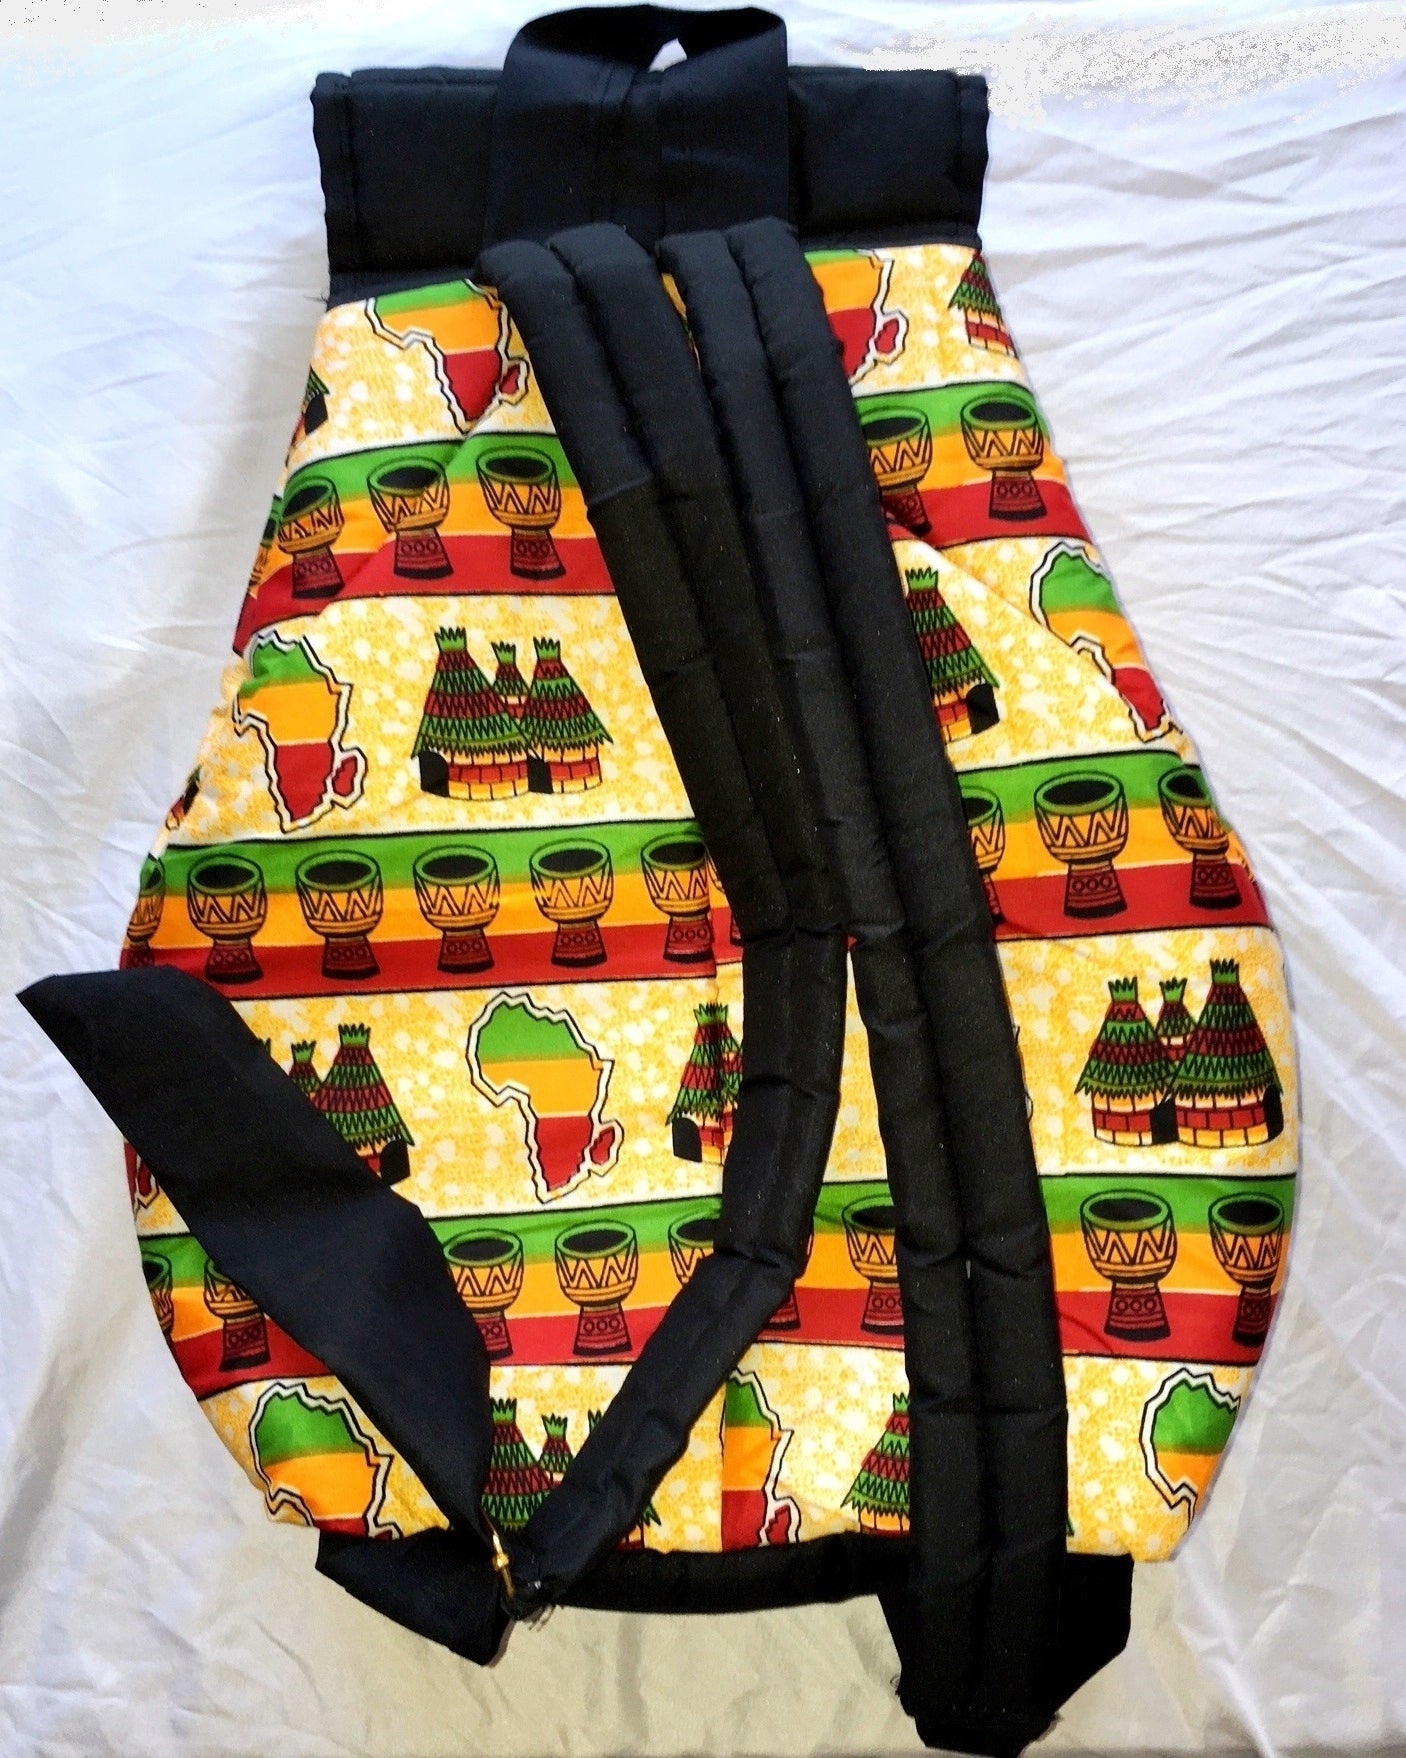 Burkina Bag Handmade African Village Design Insulated Daybag Backpack w/ Straps - Trekking Hiking Walking, backpack - Collapsible Folding Pole,Earth Trek Gear - EarthTrek Gear